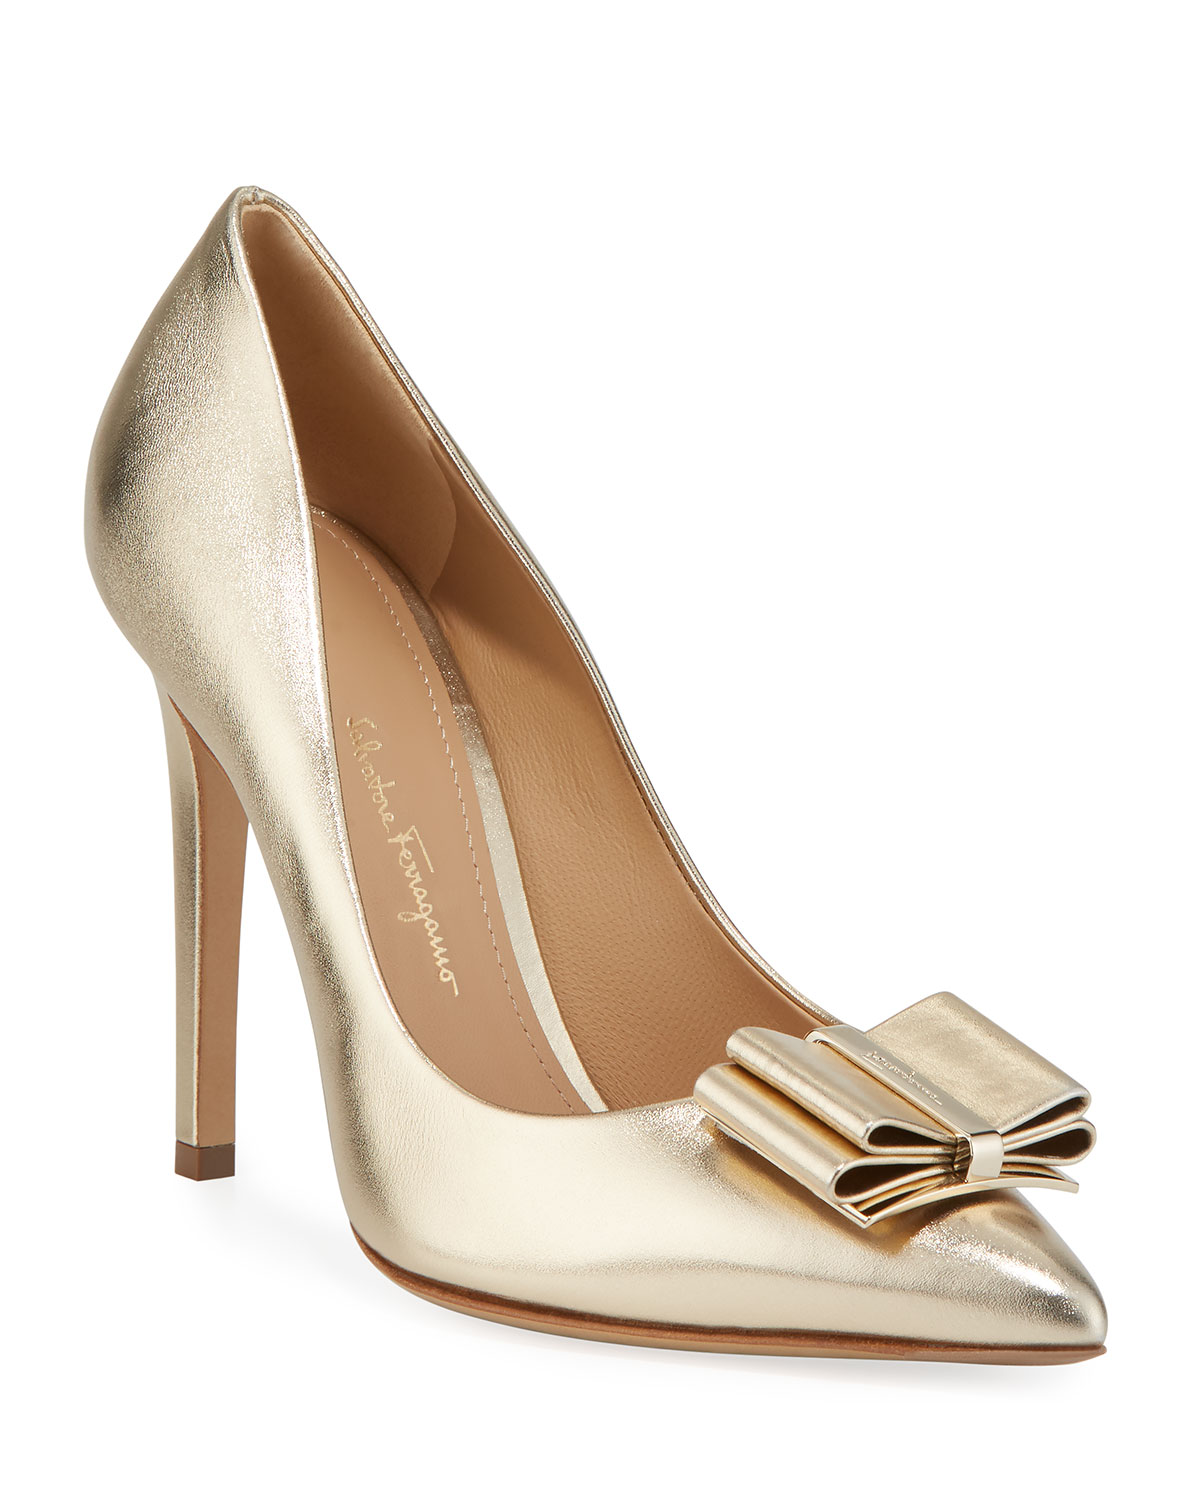 028596fd6778e Zeri High-Heel Metallic Leather Bow Pumps